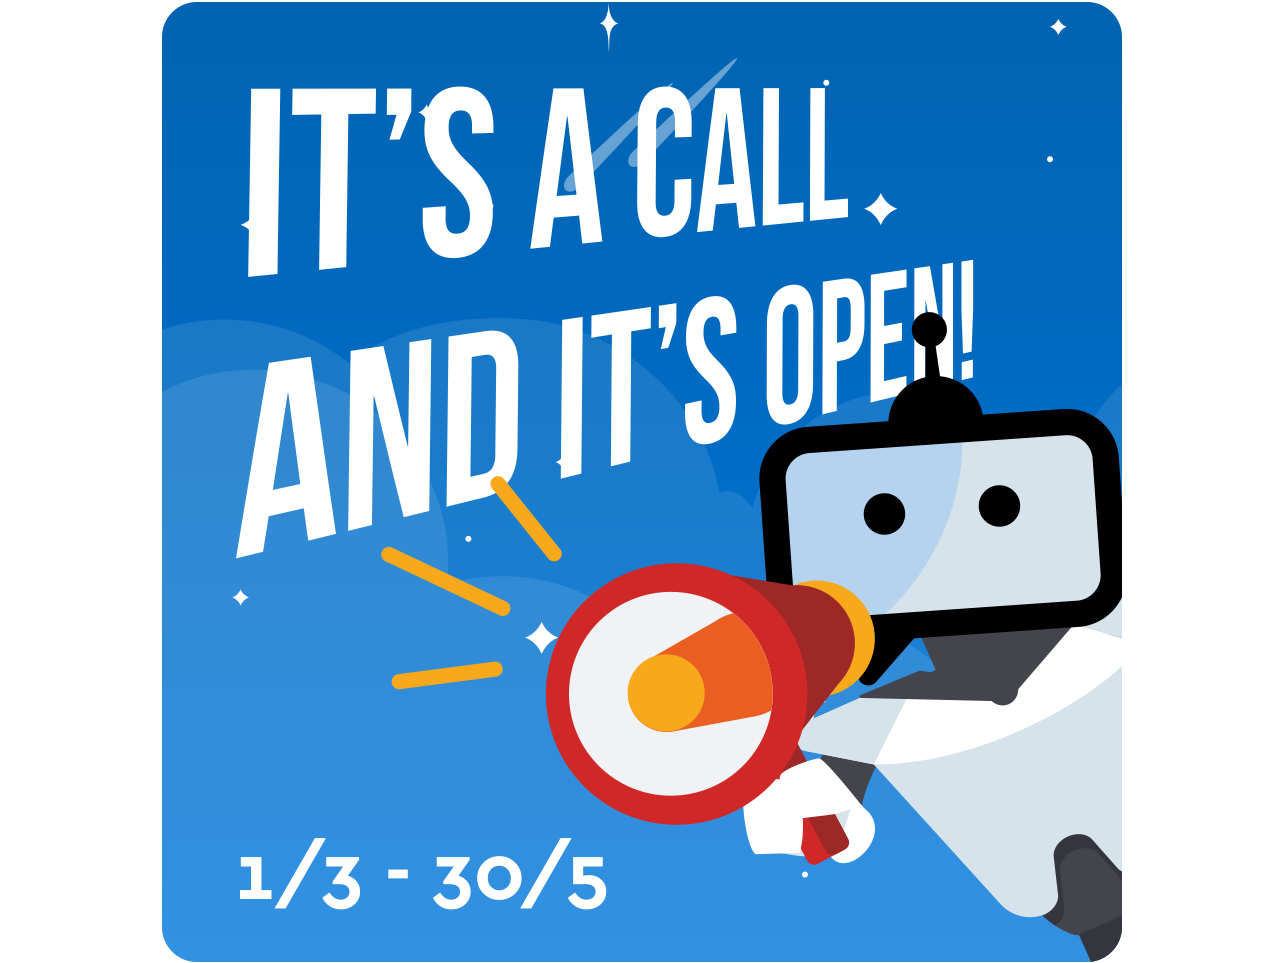 АgROBOfood is offering 2.65 M€ to SMEs through its' 1st Open Call for Innovation Experiments!